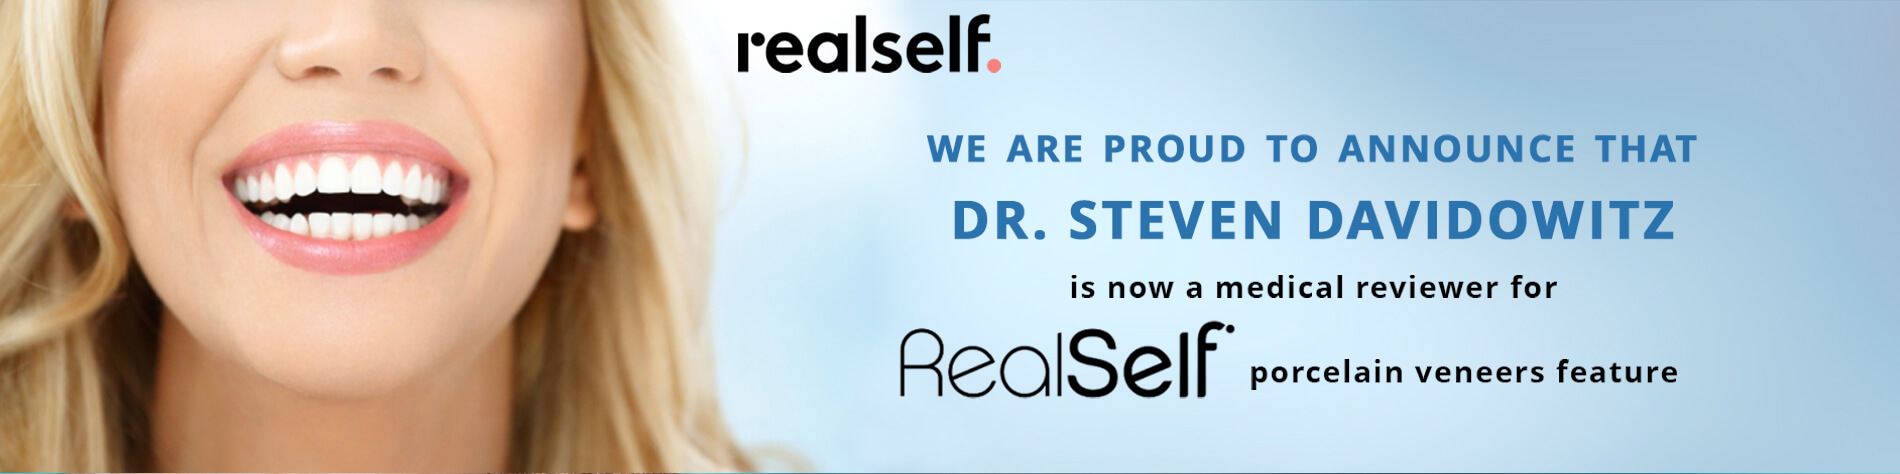 realself - we are proud to announce that dr. Steven Davidowitz is now a medical reviewer for RealSelf porcelain veneers feature